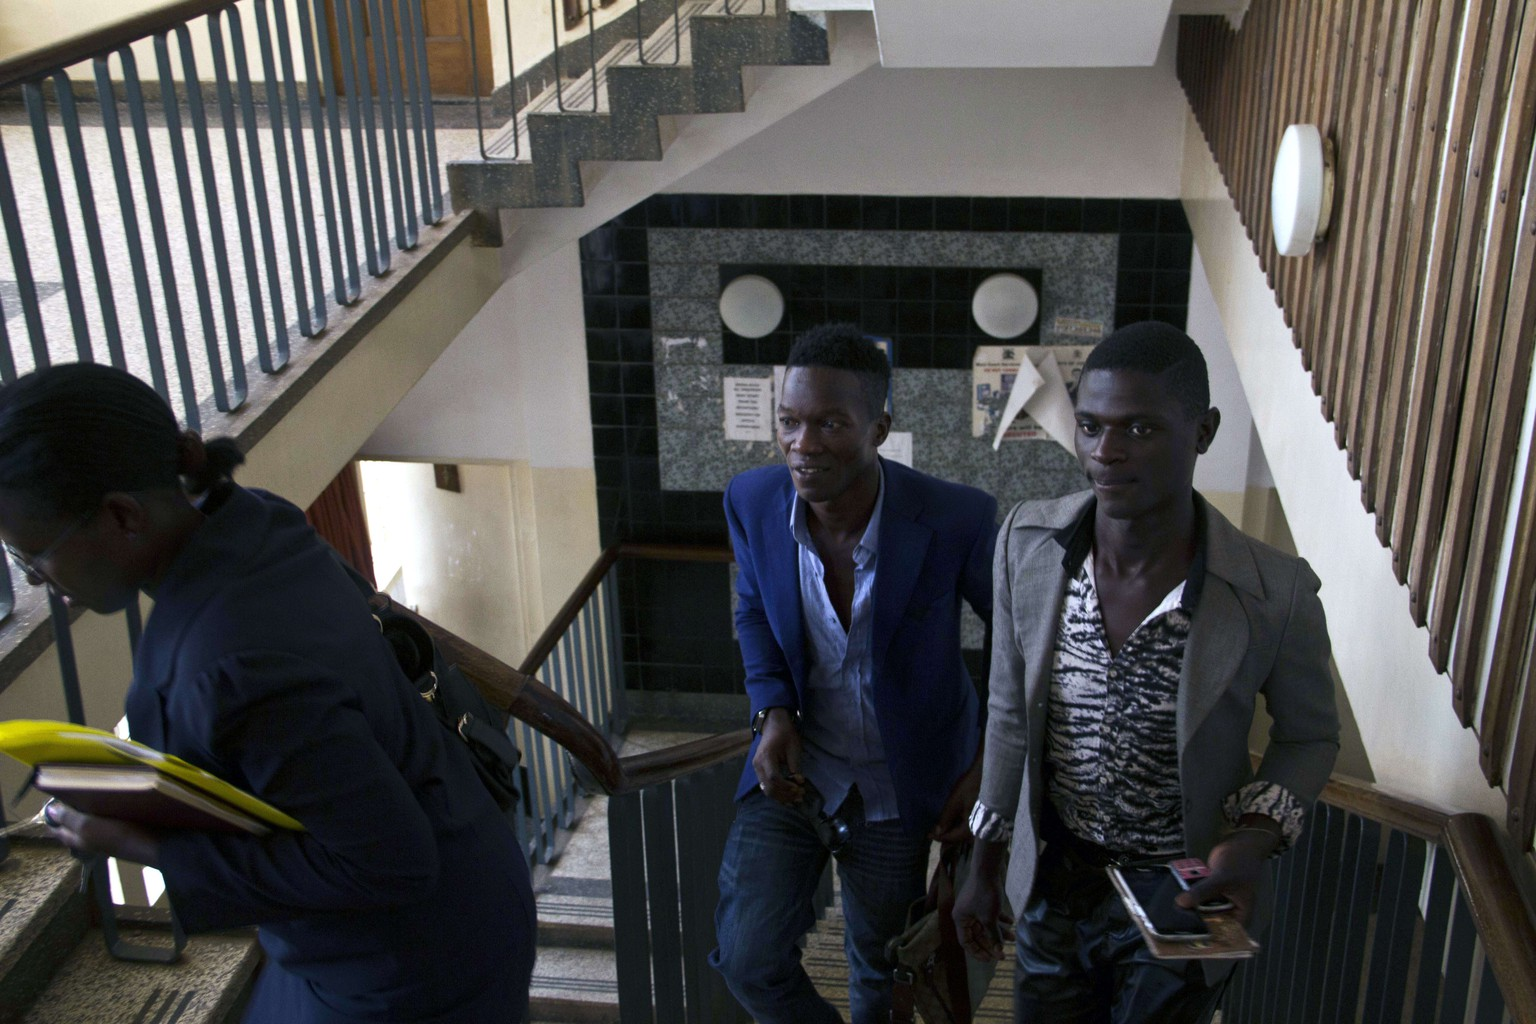 Two Ugandan men, Jackson Mukasa (R) and Kim Mukisa (L) arrive at the Buganda road Magistrate's Court on June 12, 2014 where they are charged with unnatural offences. Their case was adjourned to July 7, 2014 after lack of witnesses. The couple, if found guilty, would be the first in the East African nation to go on trial since President Yoweri Museveni signed the anti-gay bill into law in February that has seen other cases end in dismissal for want of prosecution or have remained pending. AFP PHOTO/ ISAAC KASAMANI